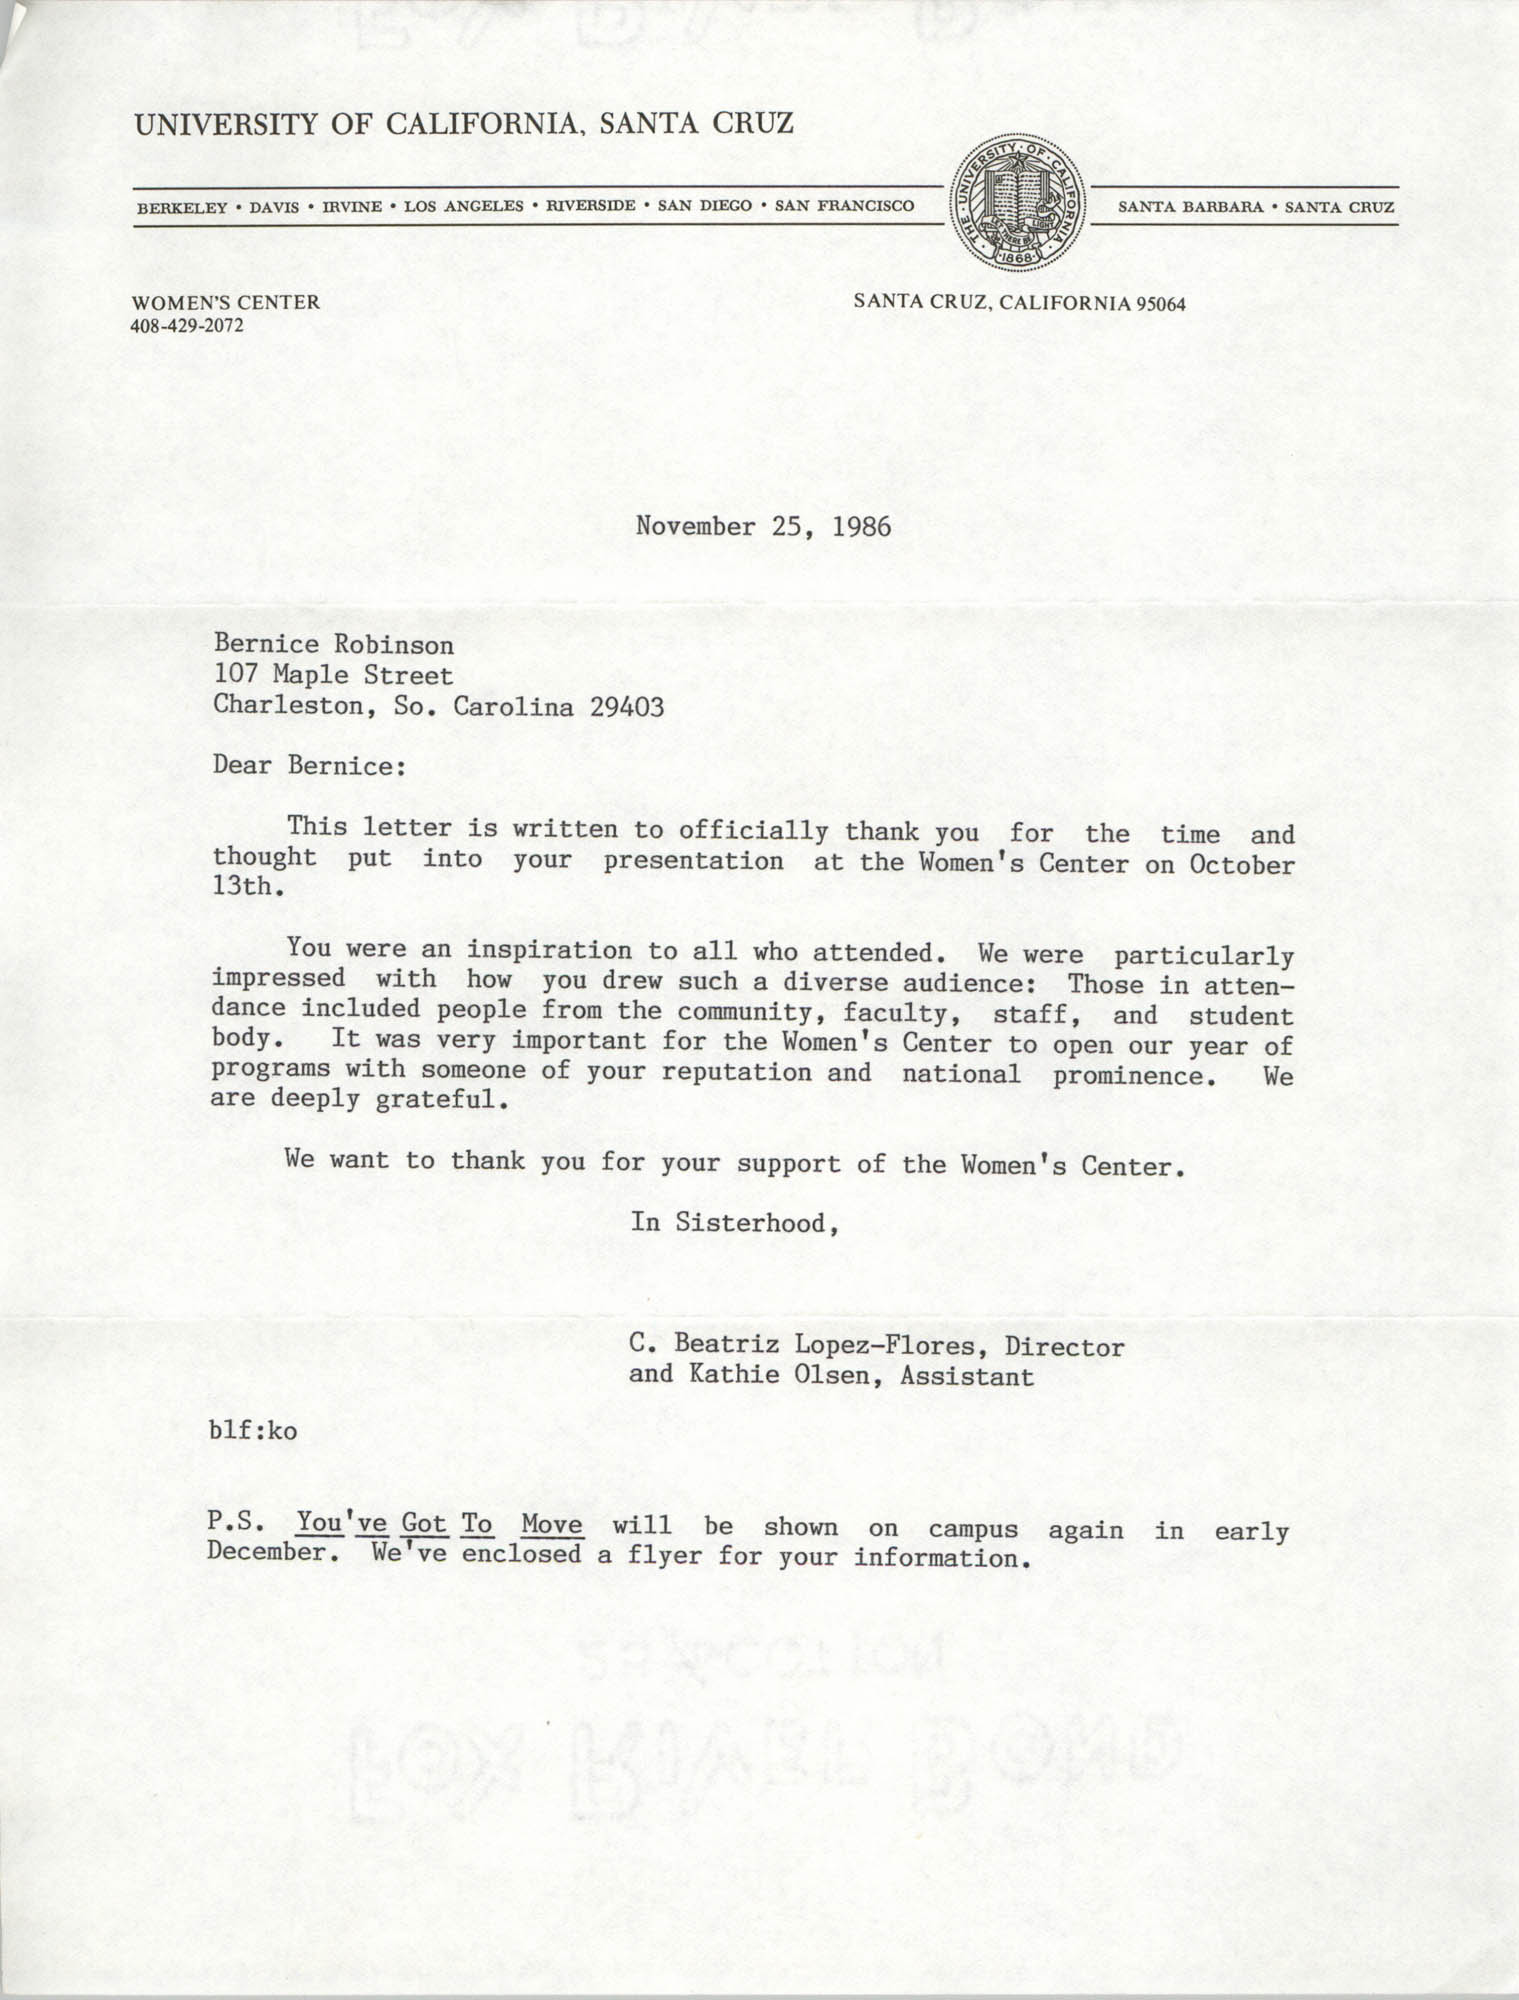 Letter from C. Beatriz Lopez-Flores and Kathie Olsen to Bernice Robinson, November 25, 1986